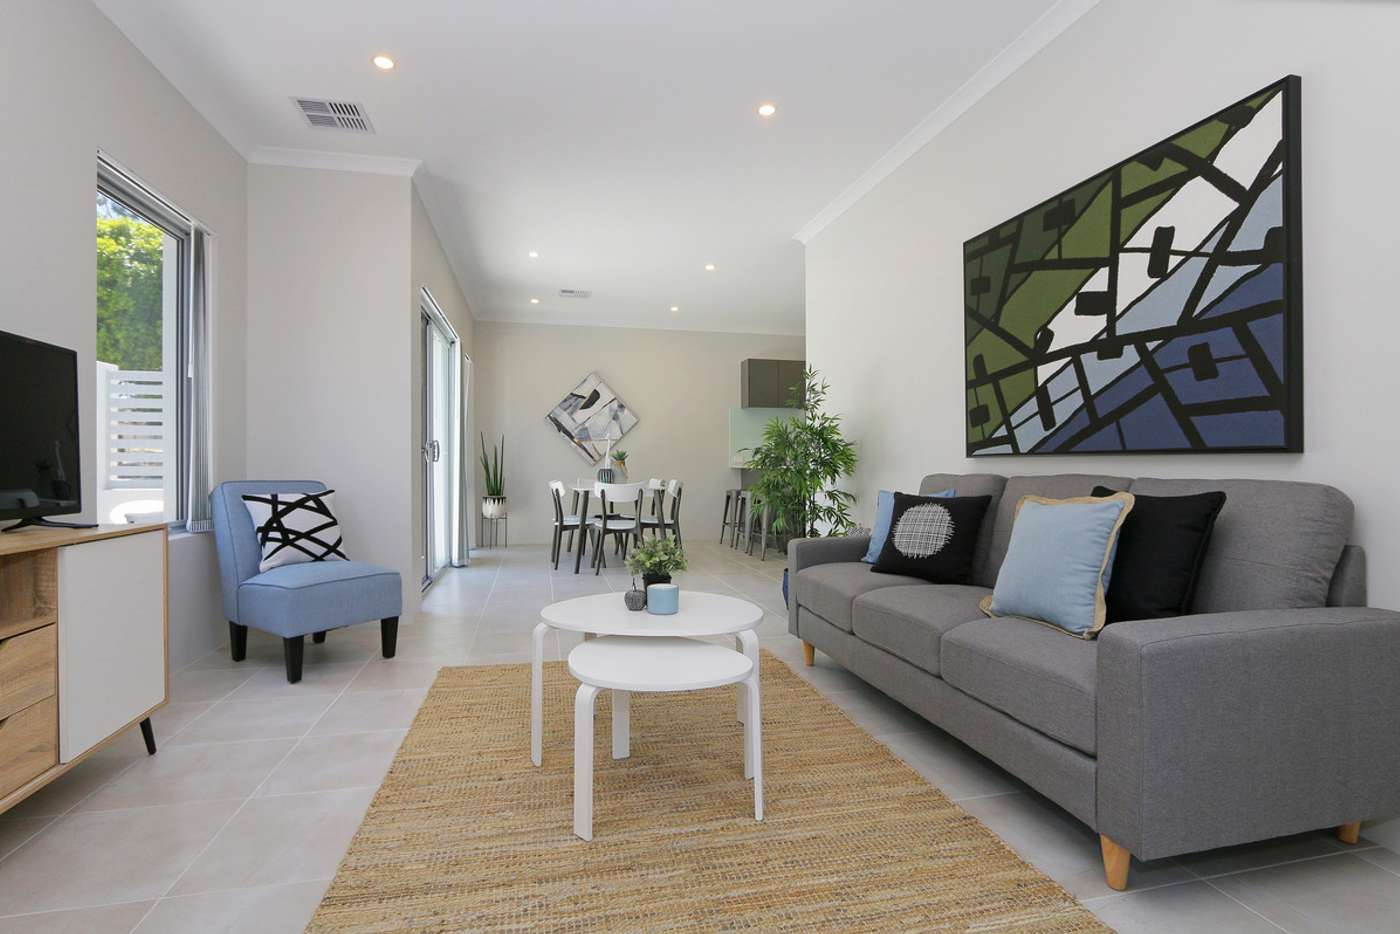 Main view of Homely townhouse listing, 2/14 Clydesdale Street, Burswood WA 6100